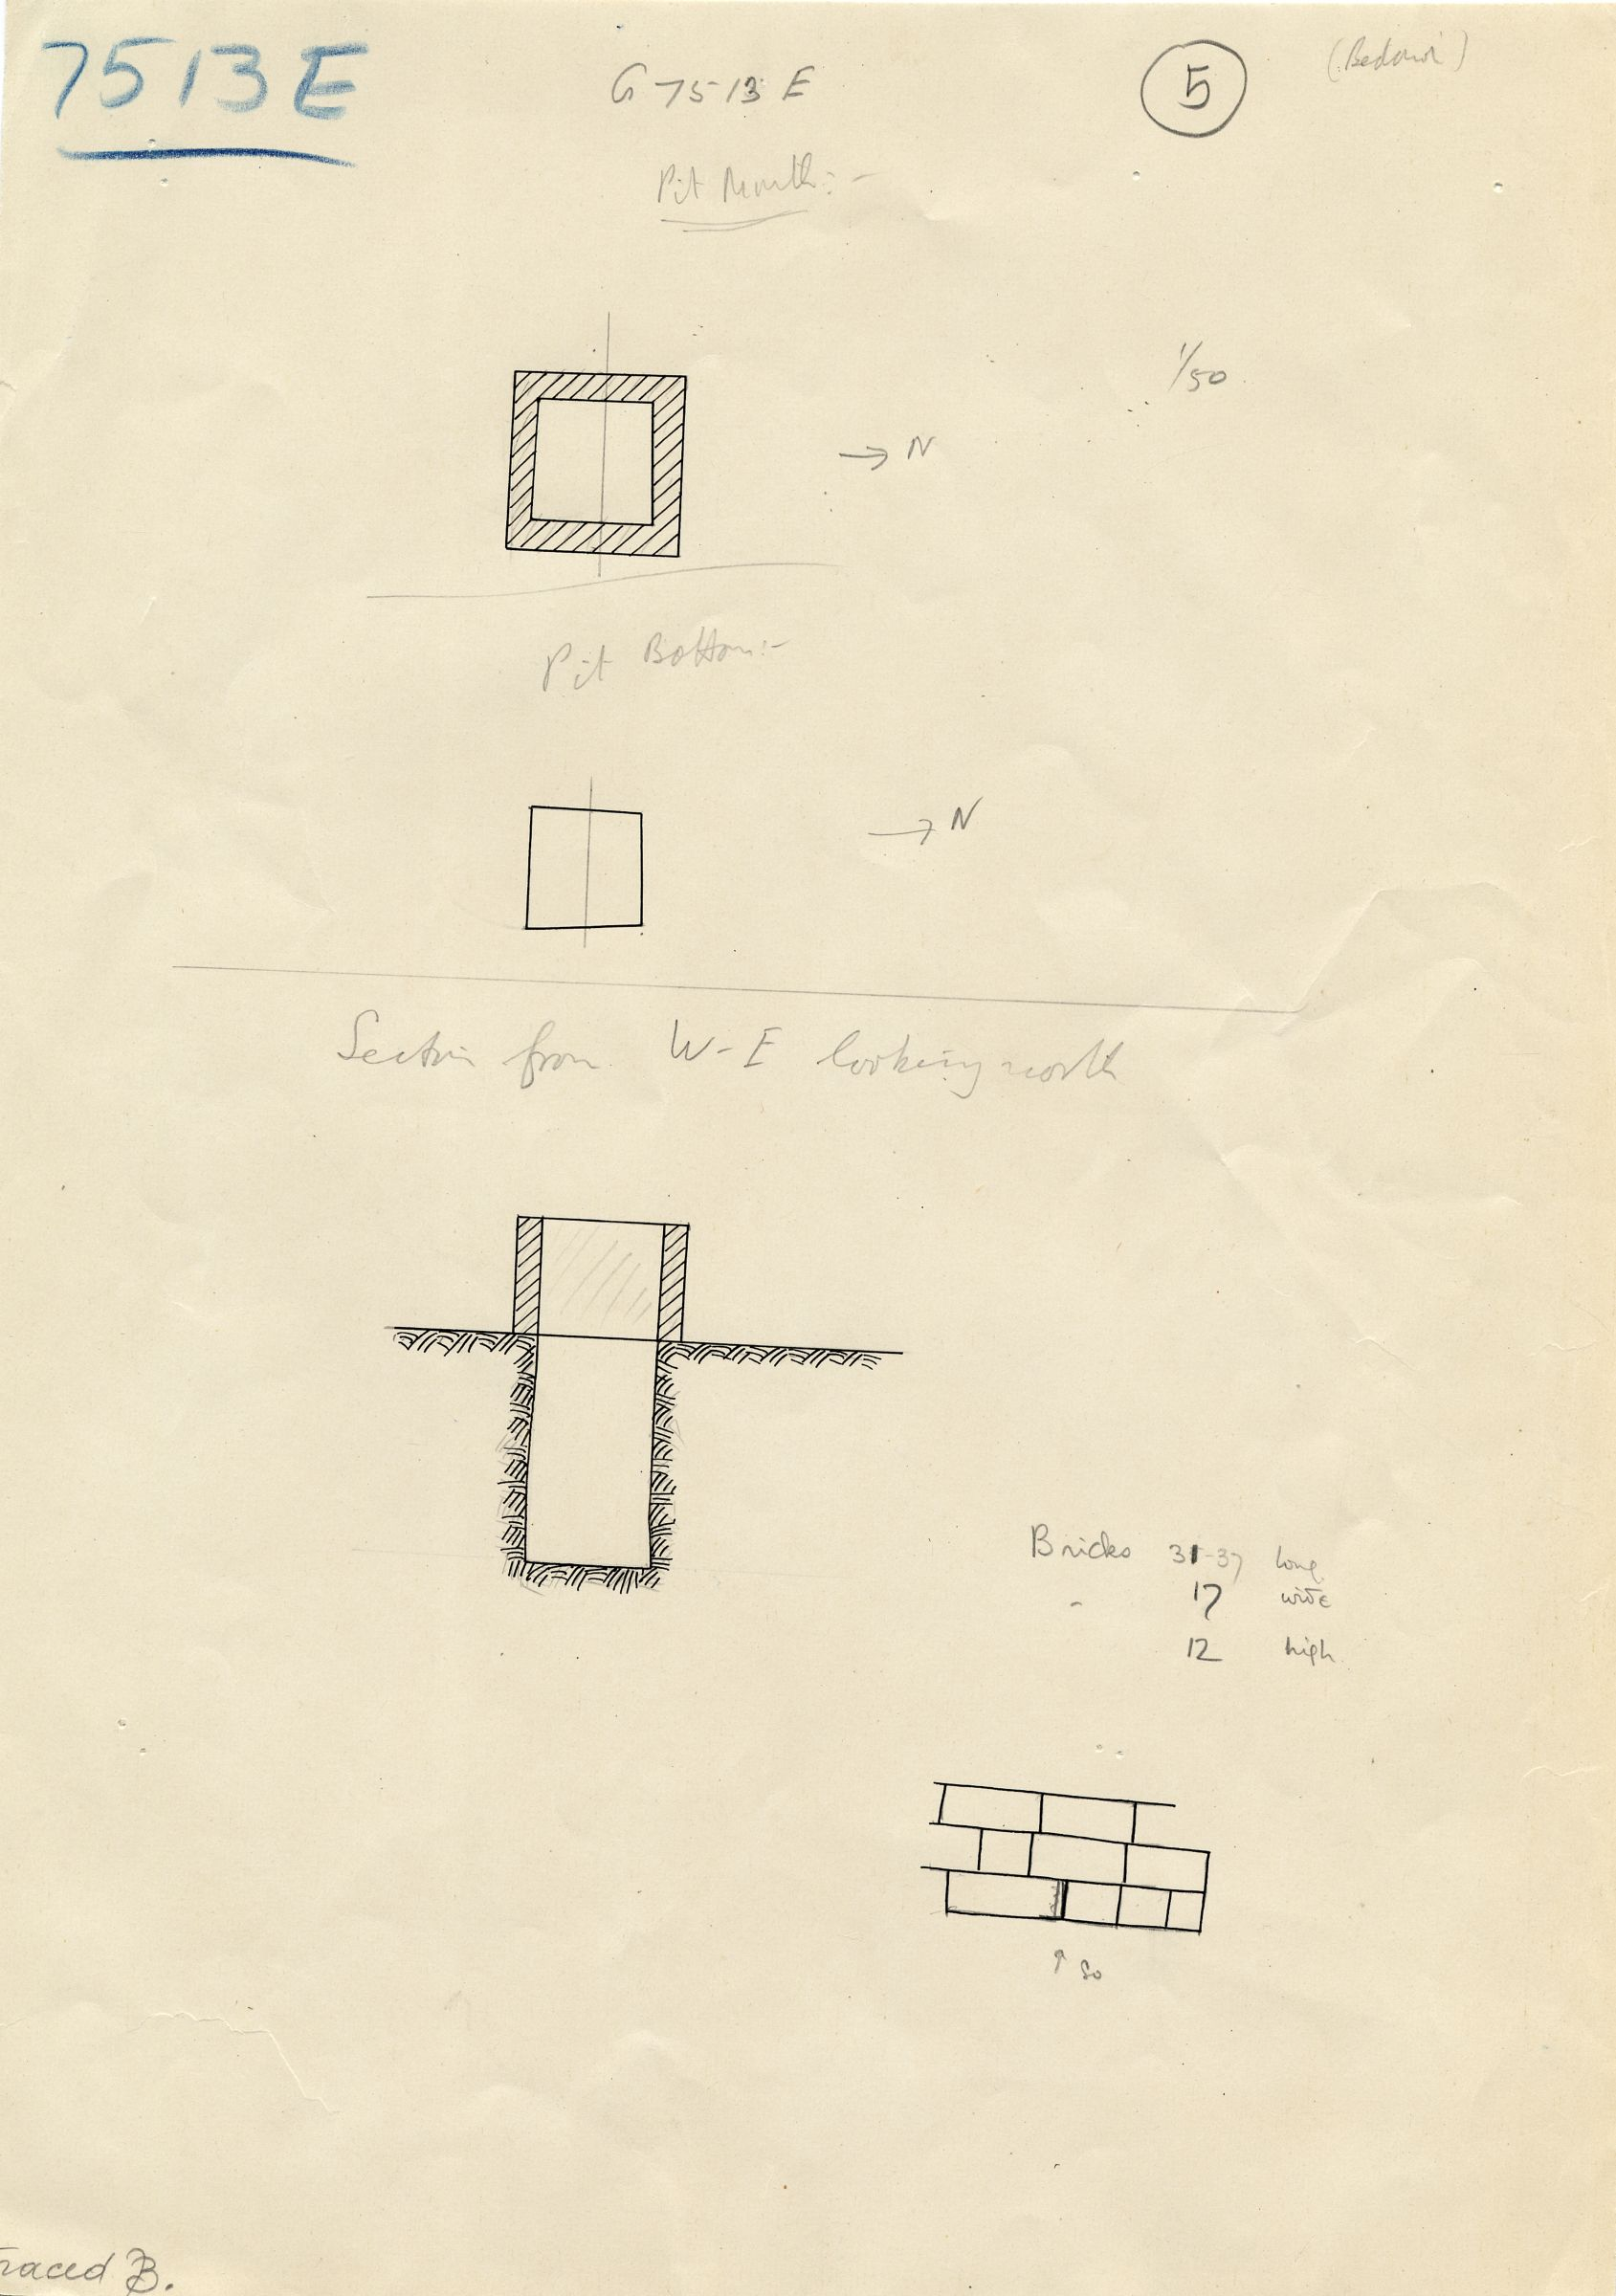 Maps and plans: G 7513, Shaft E